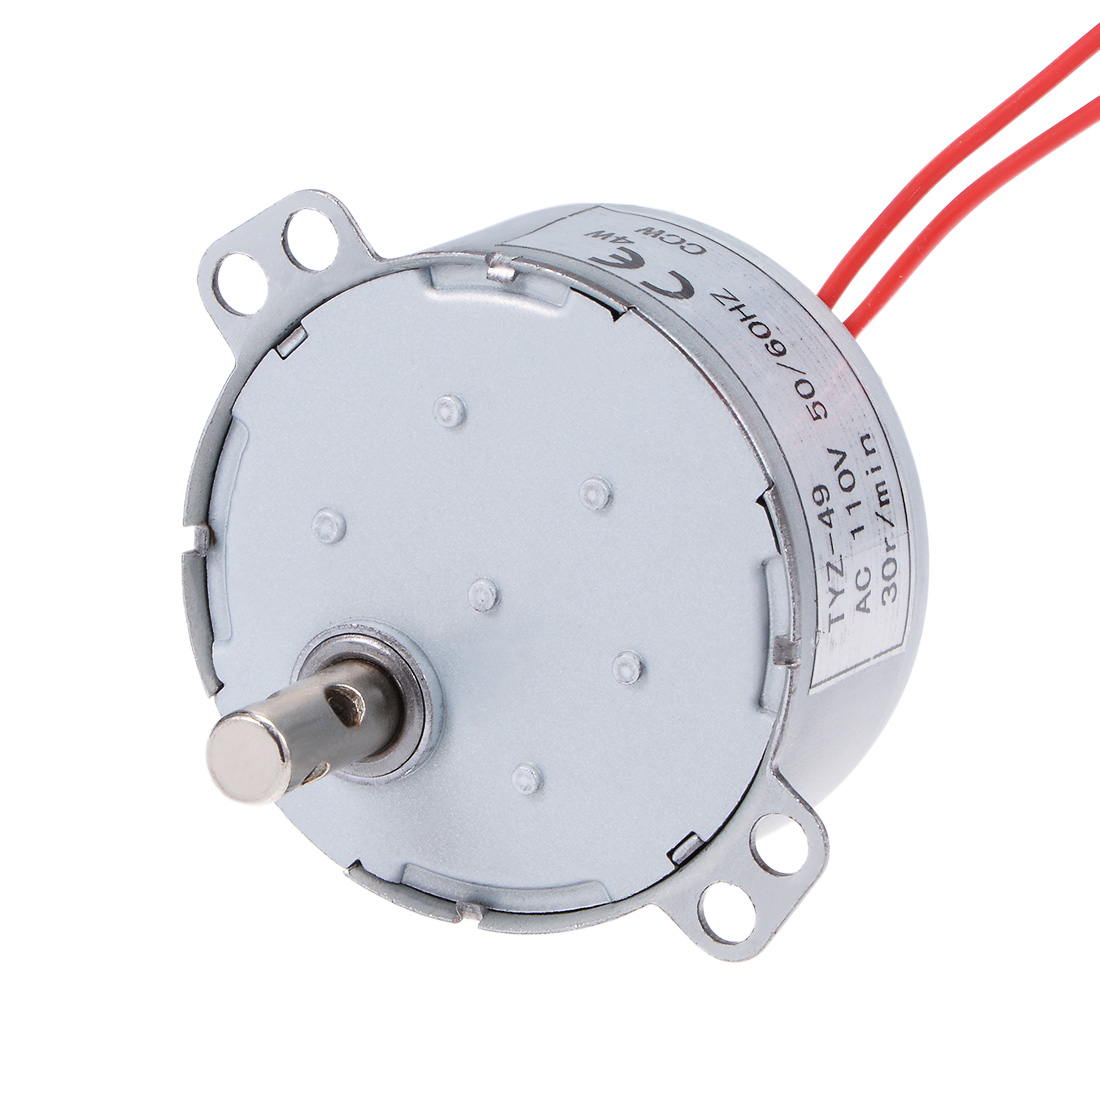 110V 50/60Hz 30RPM CCW AC Synchronous Motor Turntable Gear Box for Microwave